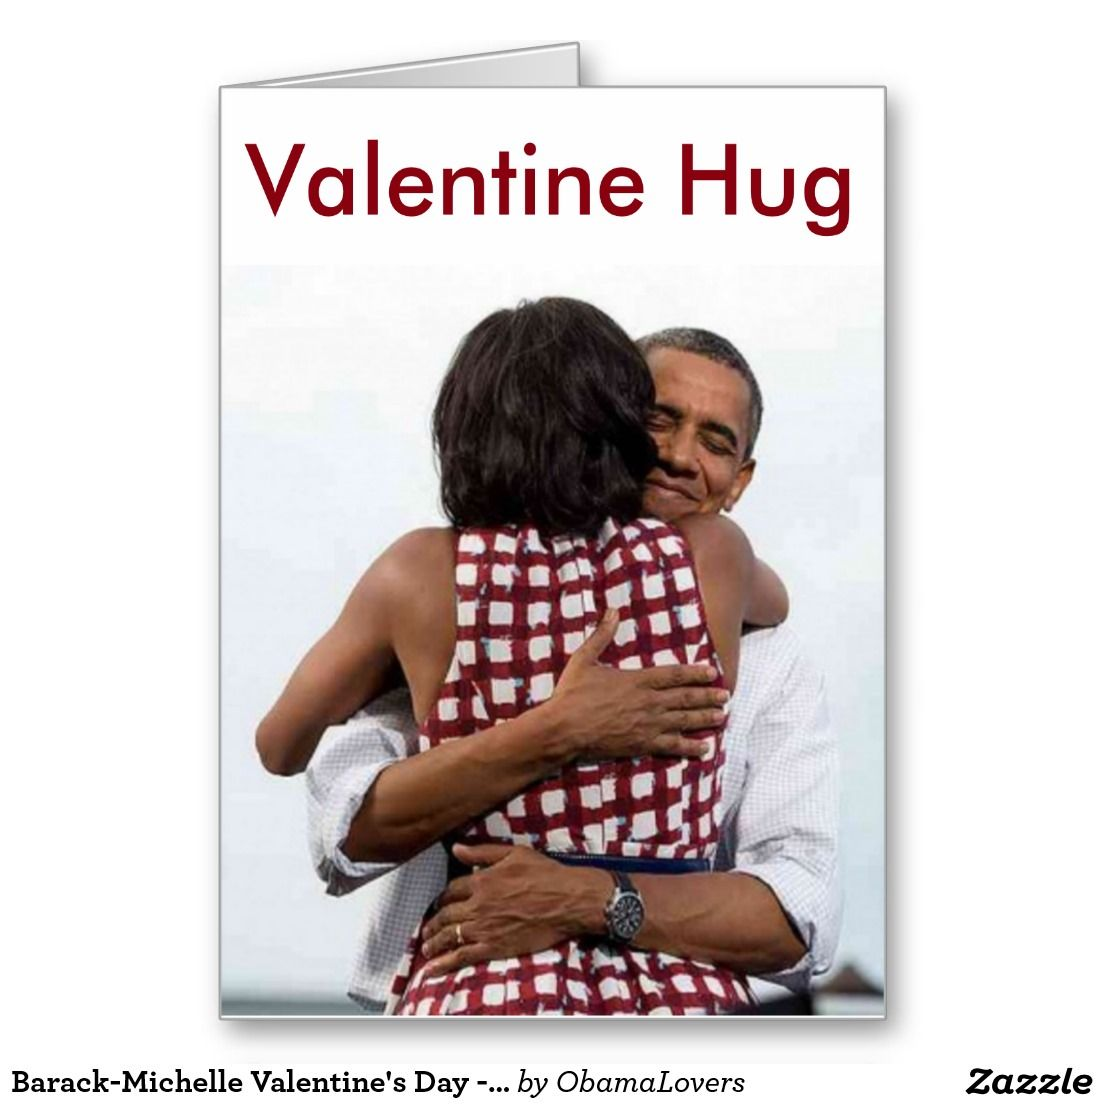 Barack michelle valentines day card obama greeting cardsnote racist man behind bars for threatening to behead obama kristyandbryce Choice Image